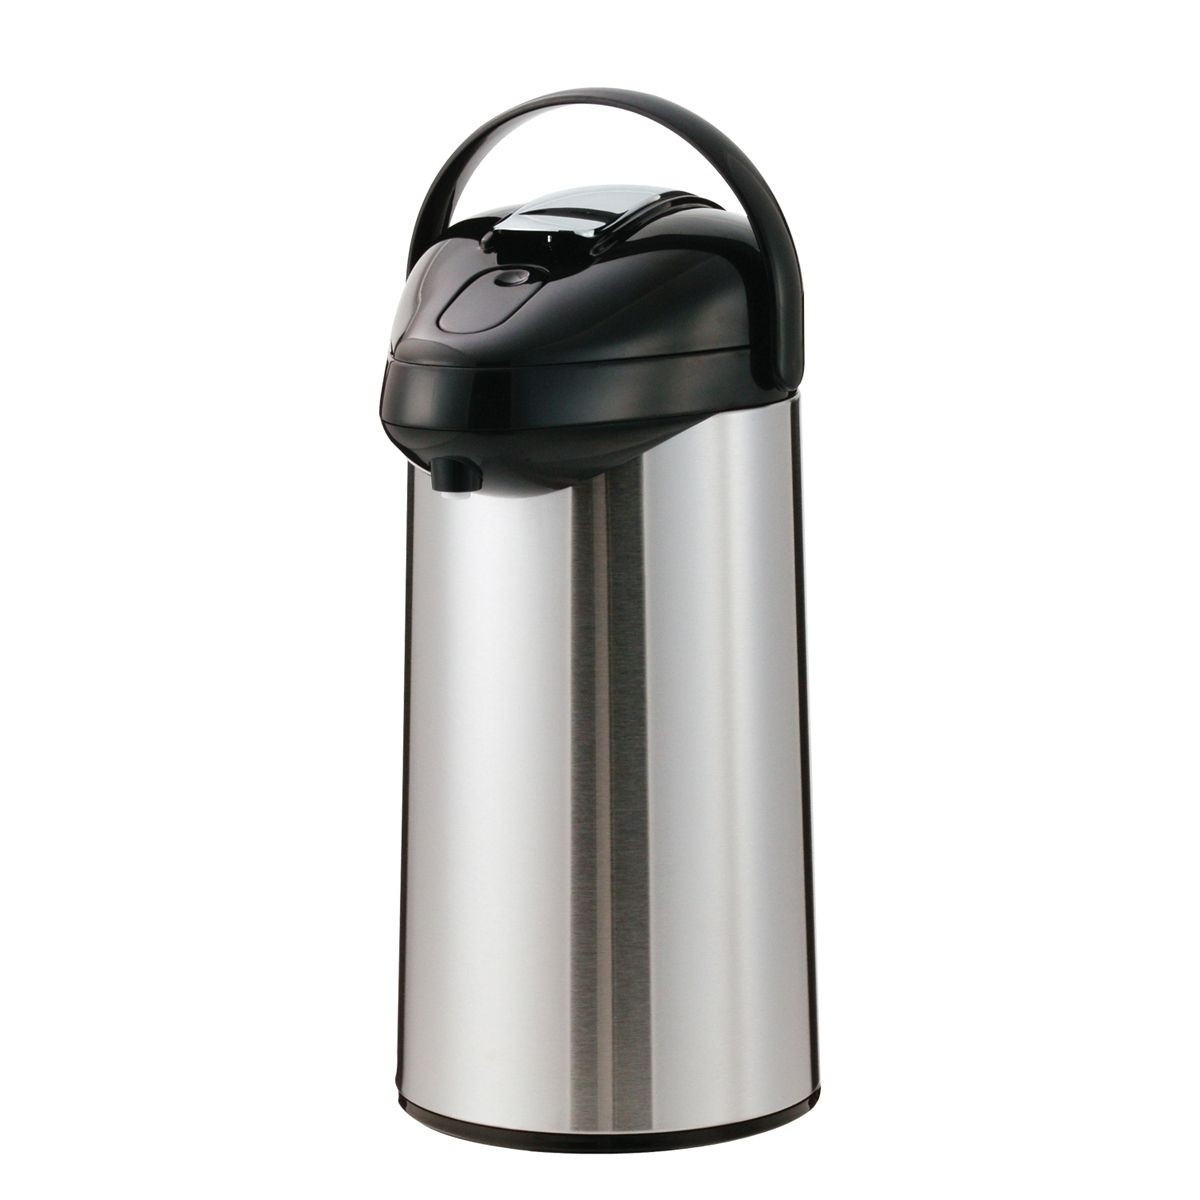 Service Ideas SSAL375 Steelvac Airpot with Interchangeable Lever Lid, 3.75 Liter